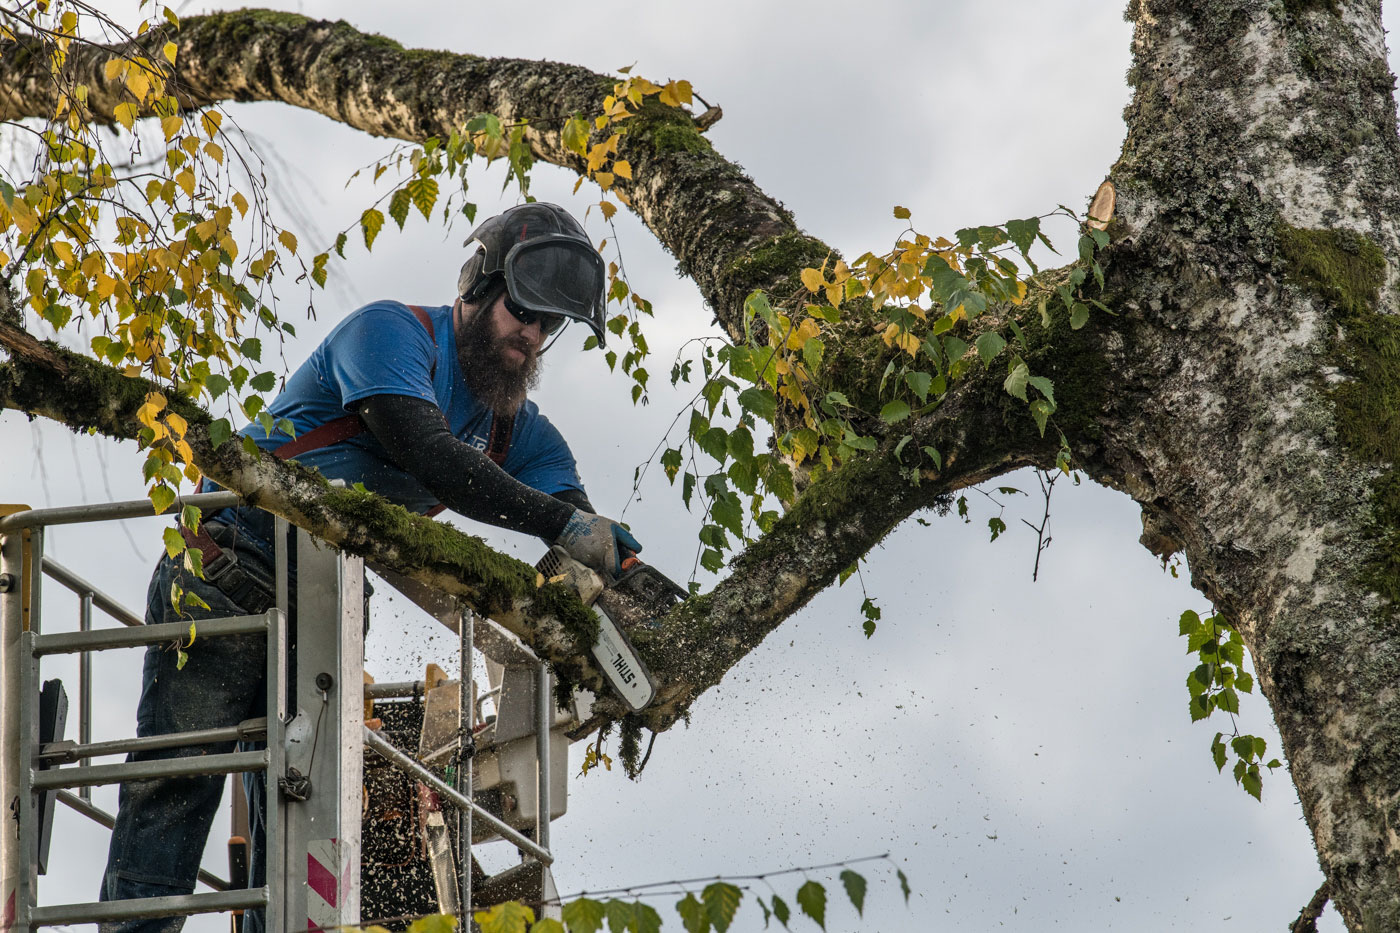 Tim Brewer Tree & Stump Service employee Derick Swain removes limbs from a tree in Corvallis, Oregon.